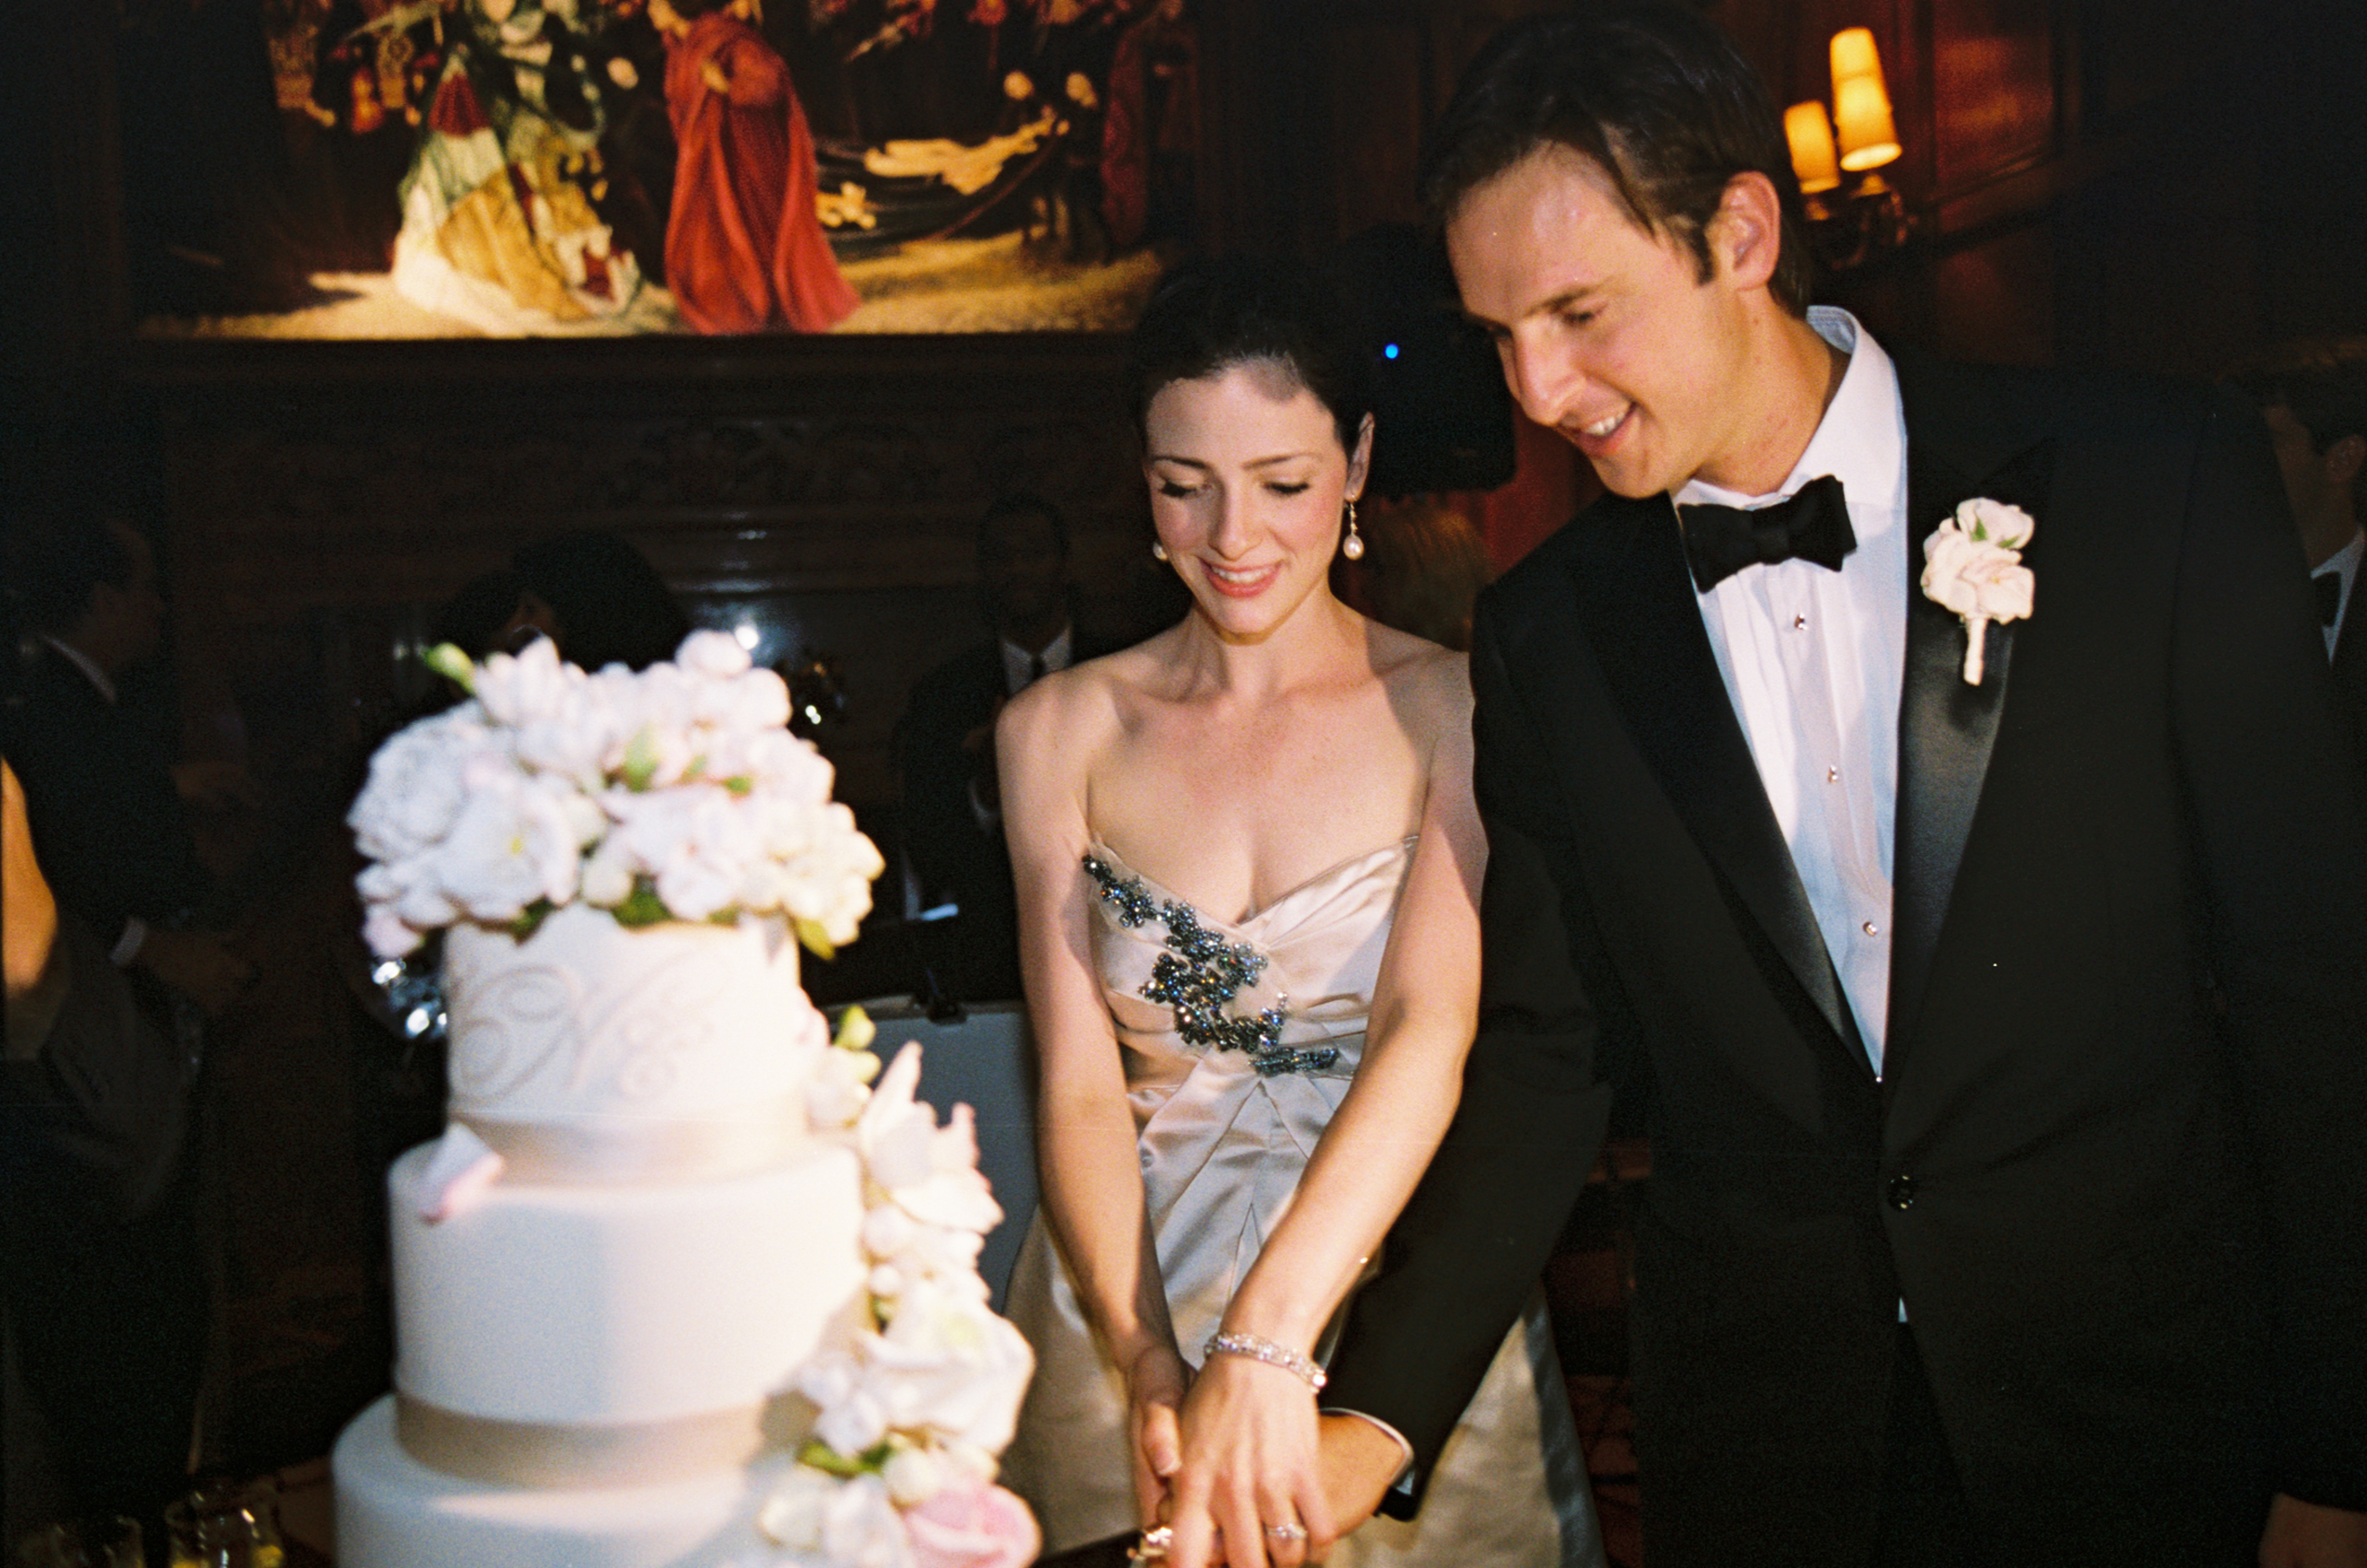 Wedding Cake Cutting Disasters Traditions To Not Skip For Your Amanda